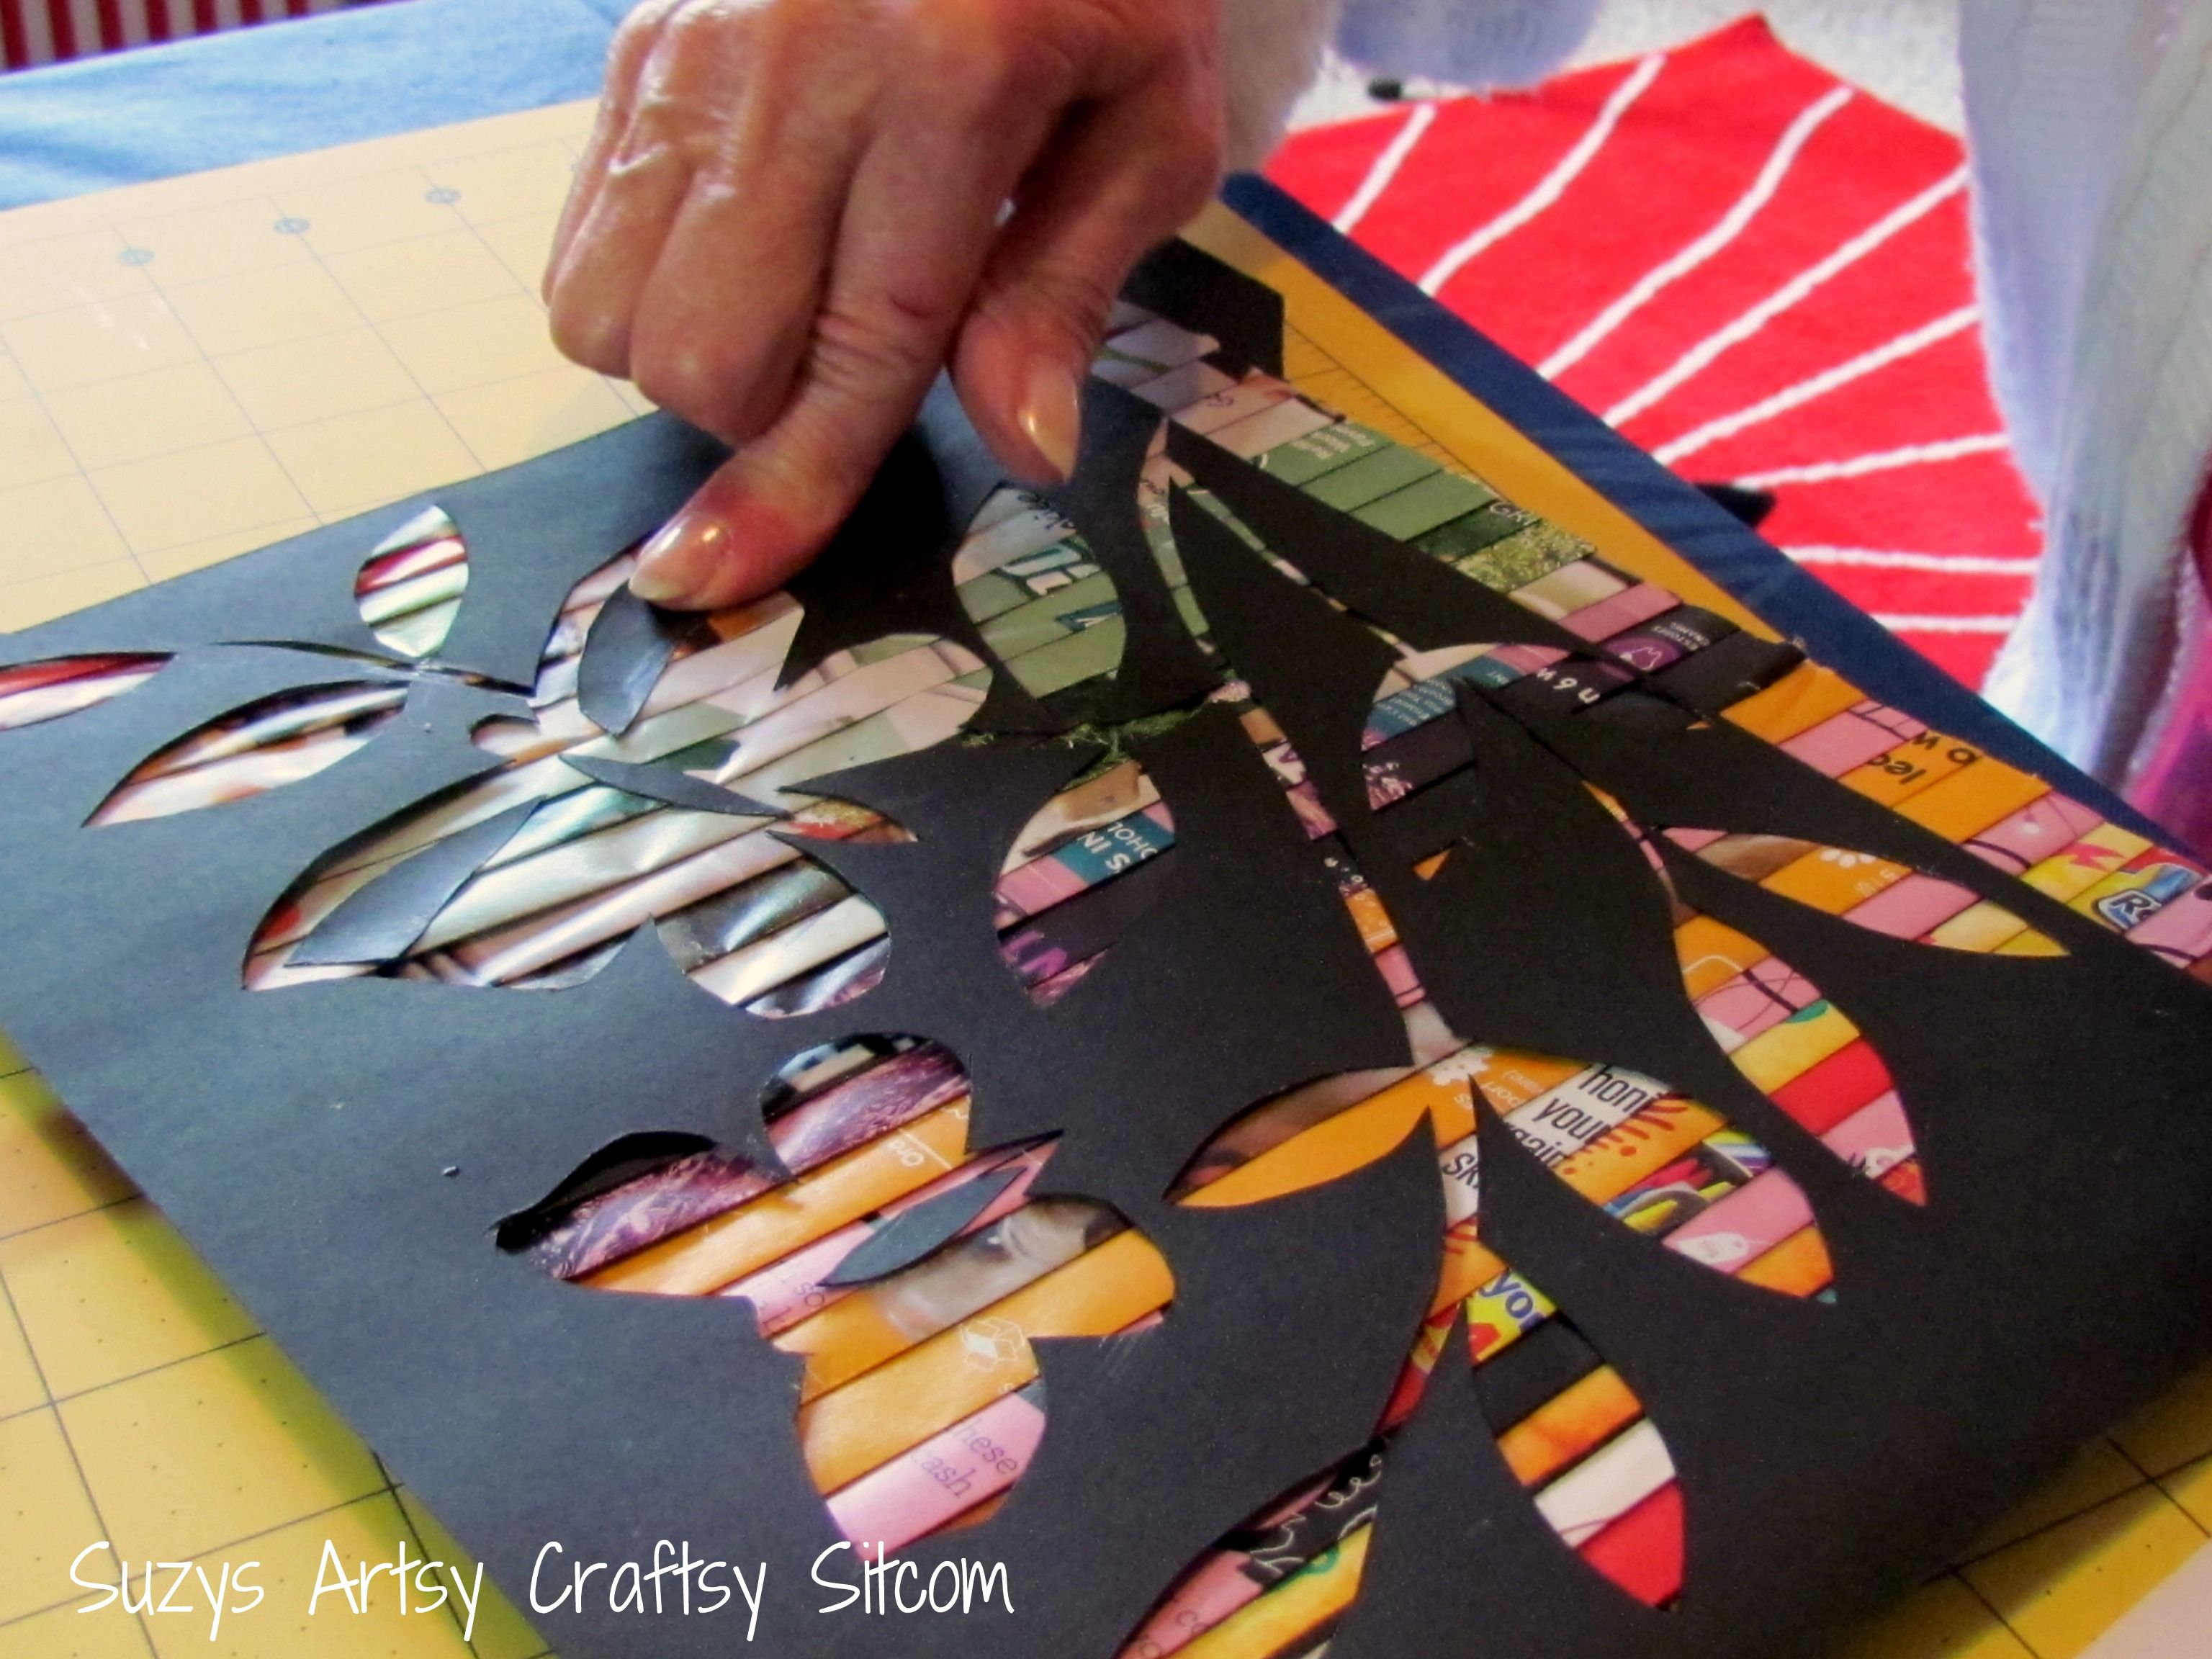 Recycled Crafts- Cut Paper Art from recycled magazines! #recycledcrafts